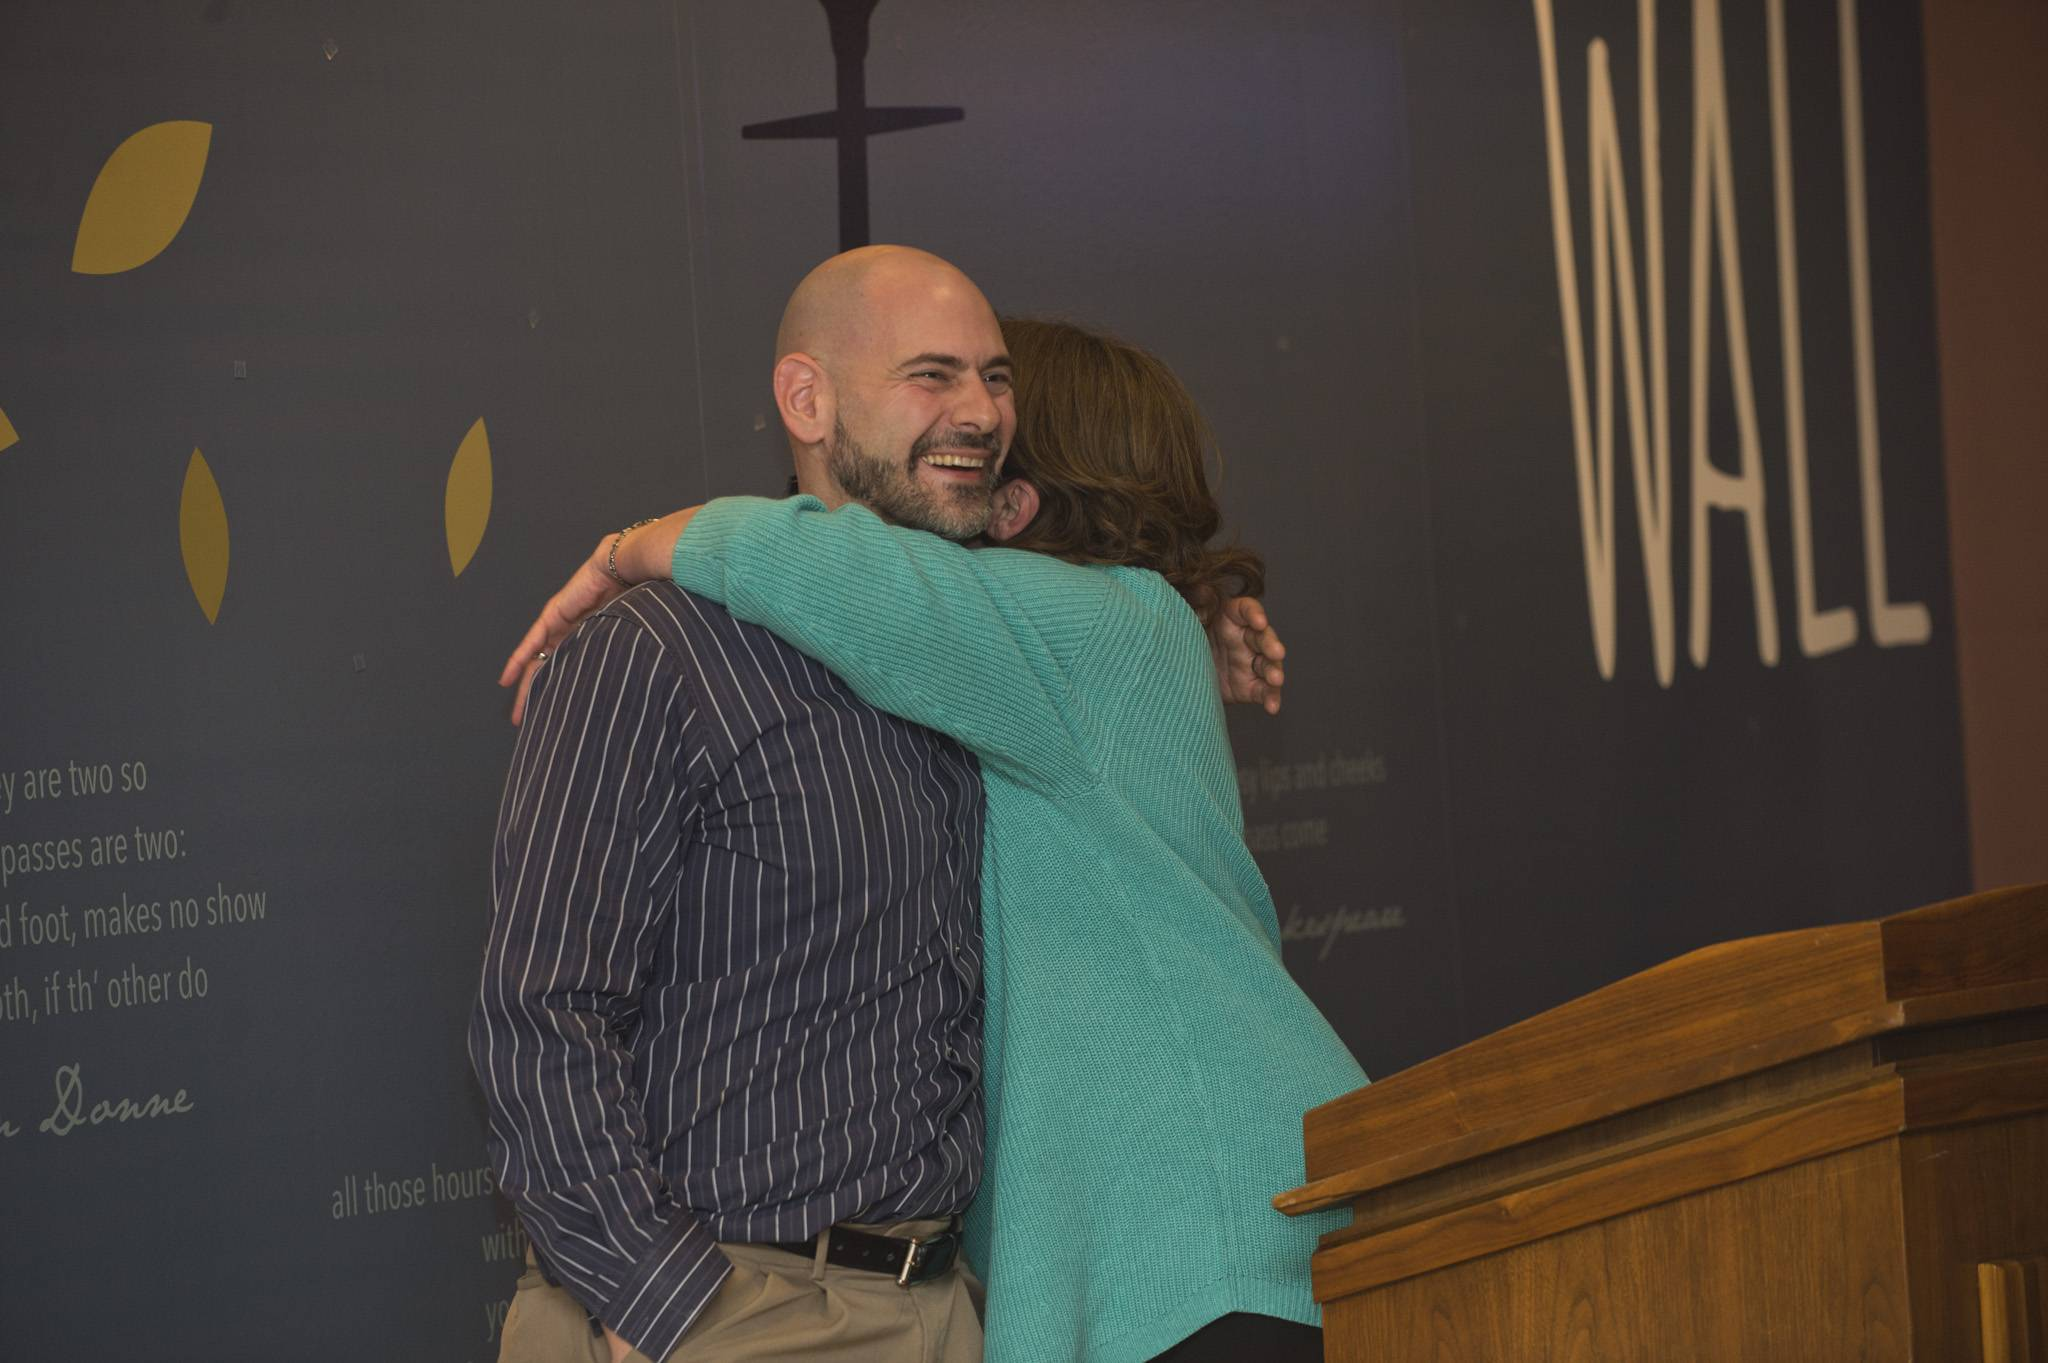 Jason Conglis, who created the graphics for the poetry wall, gets a hug from Rachael Stewart, an associate professor of English at Elgin Community College, during Thursday's event that honored former teacher Florence B. Palmer.